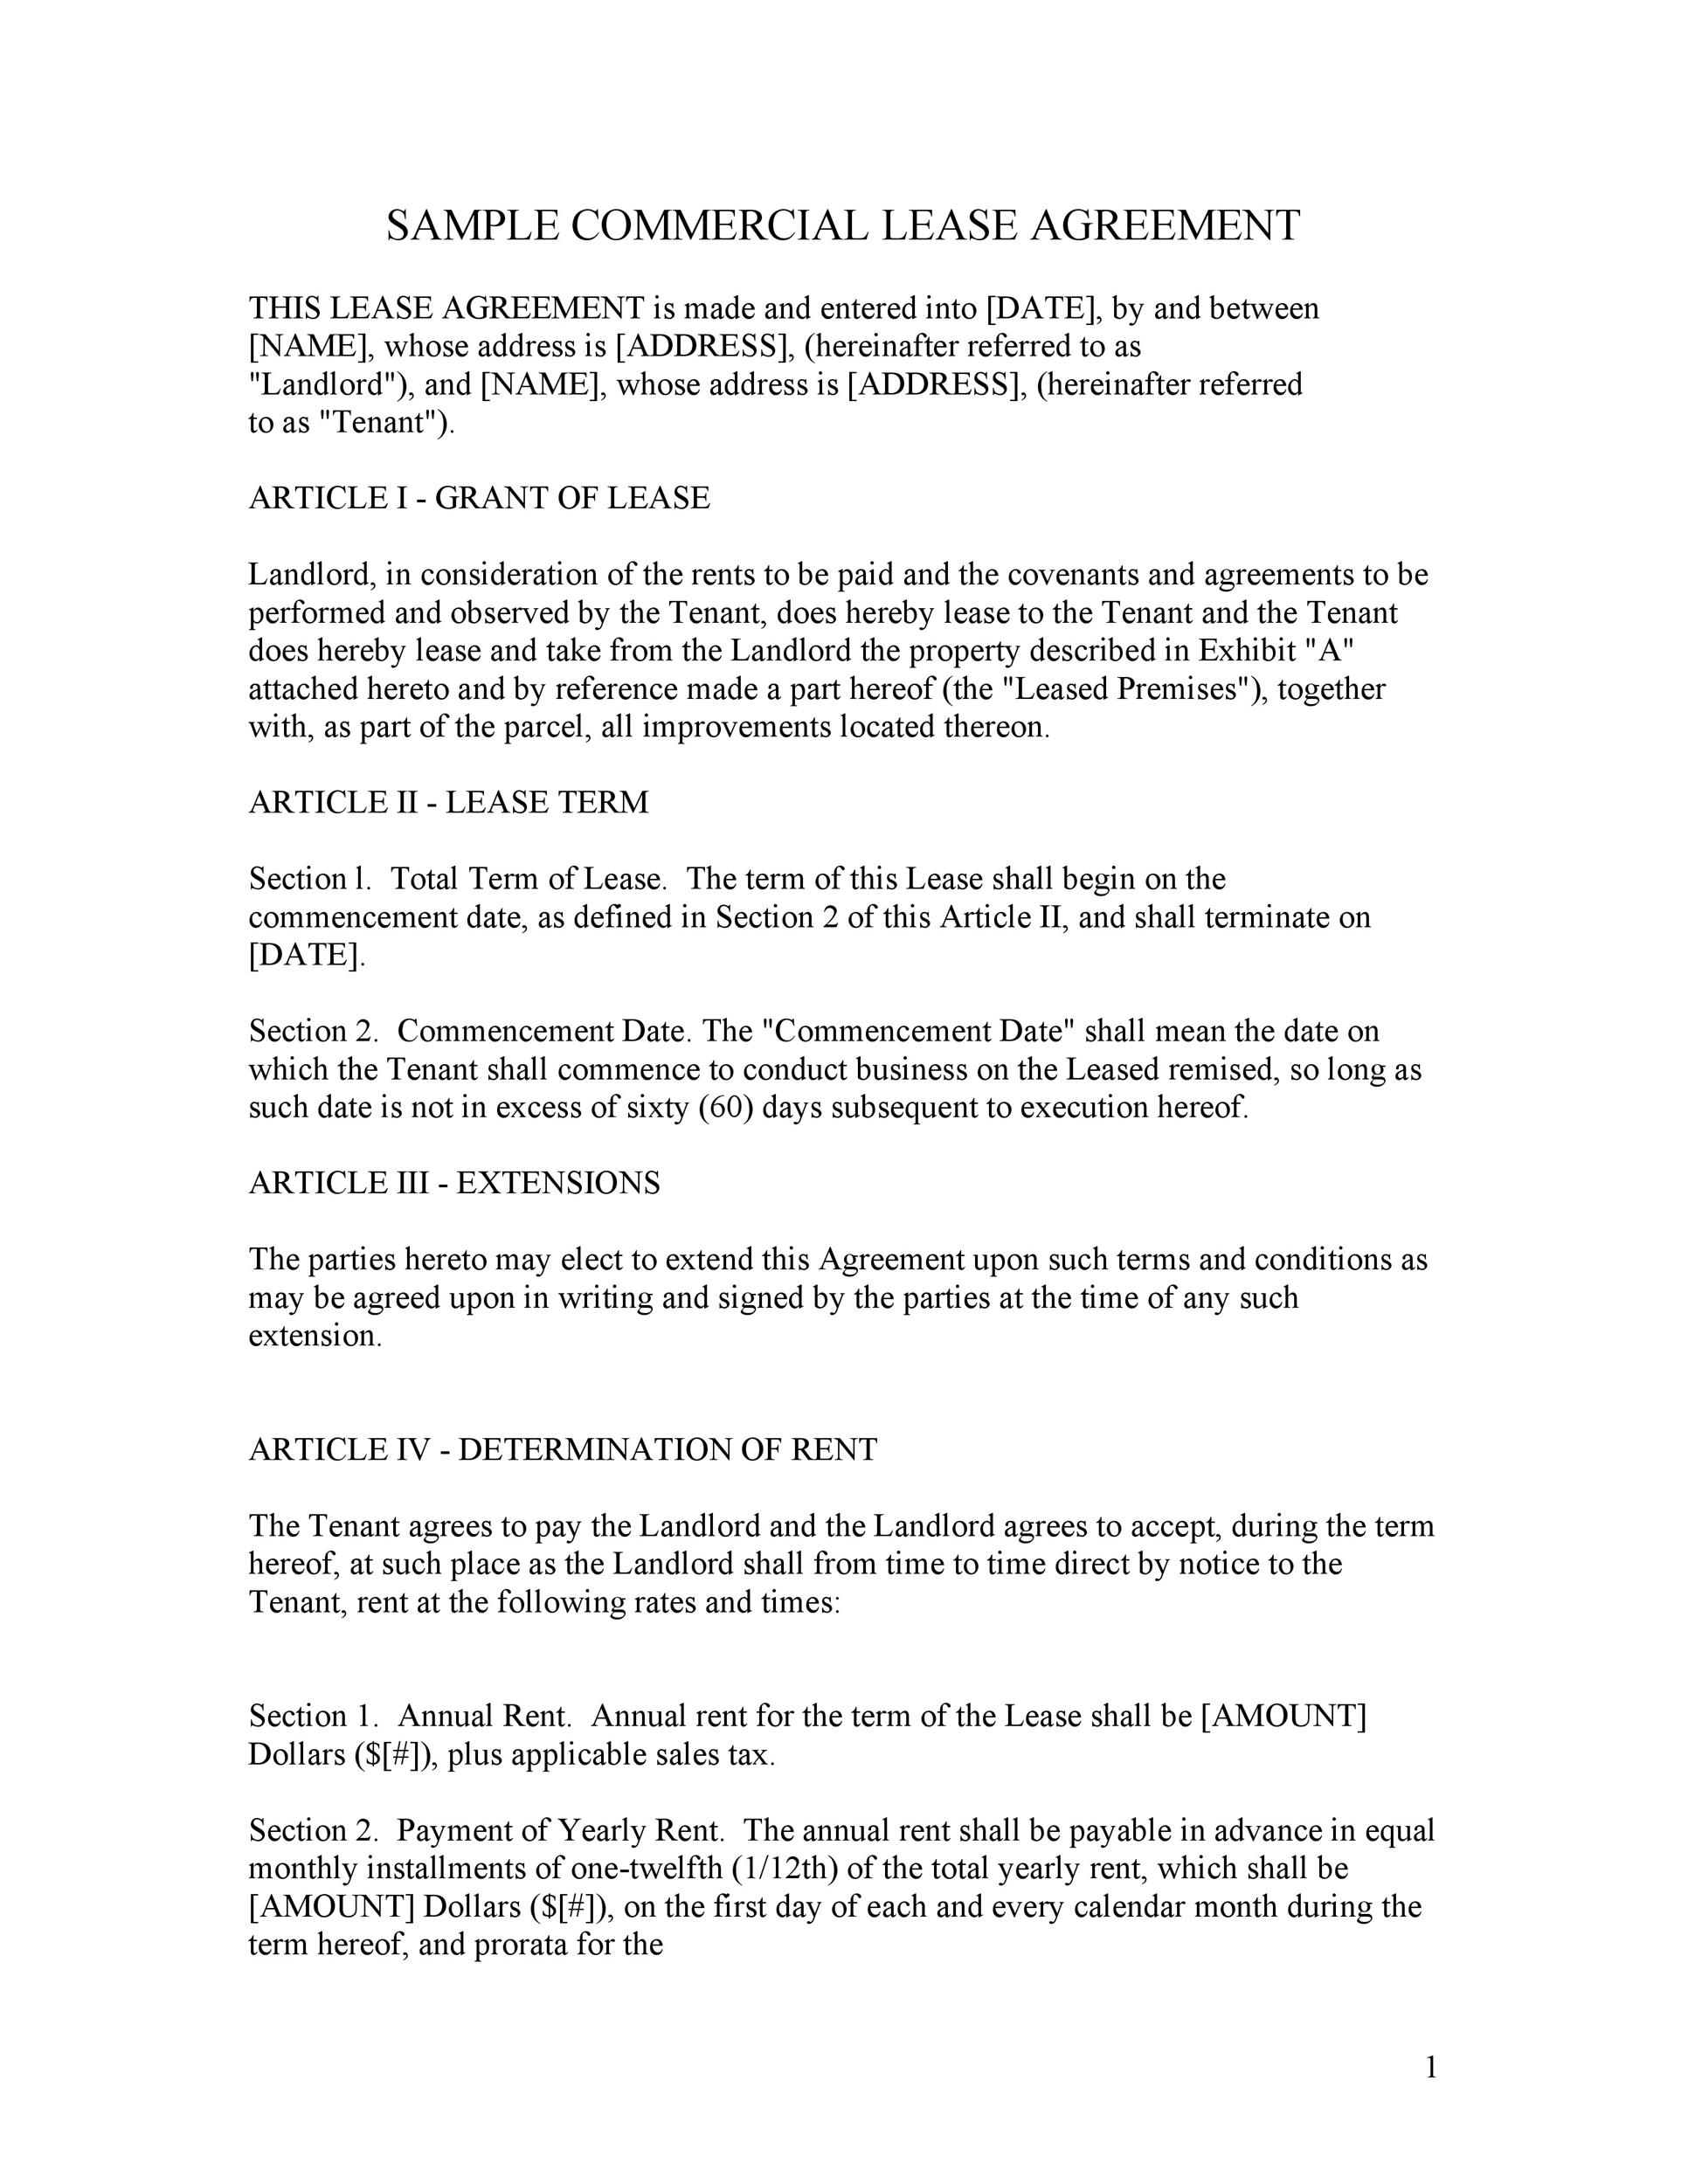 26 Free Commercial Lease Agreement Templates - Template Lab - Yearly Contract Template